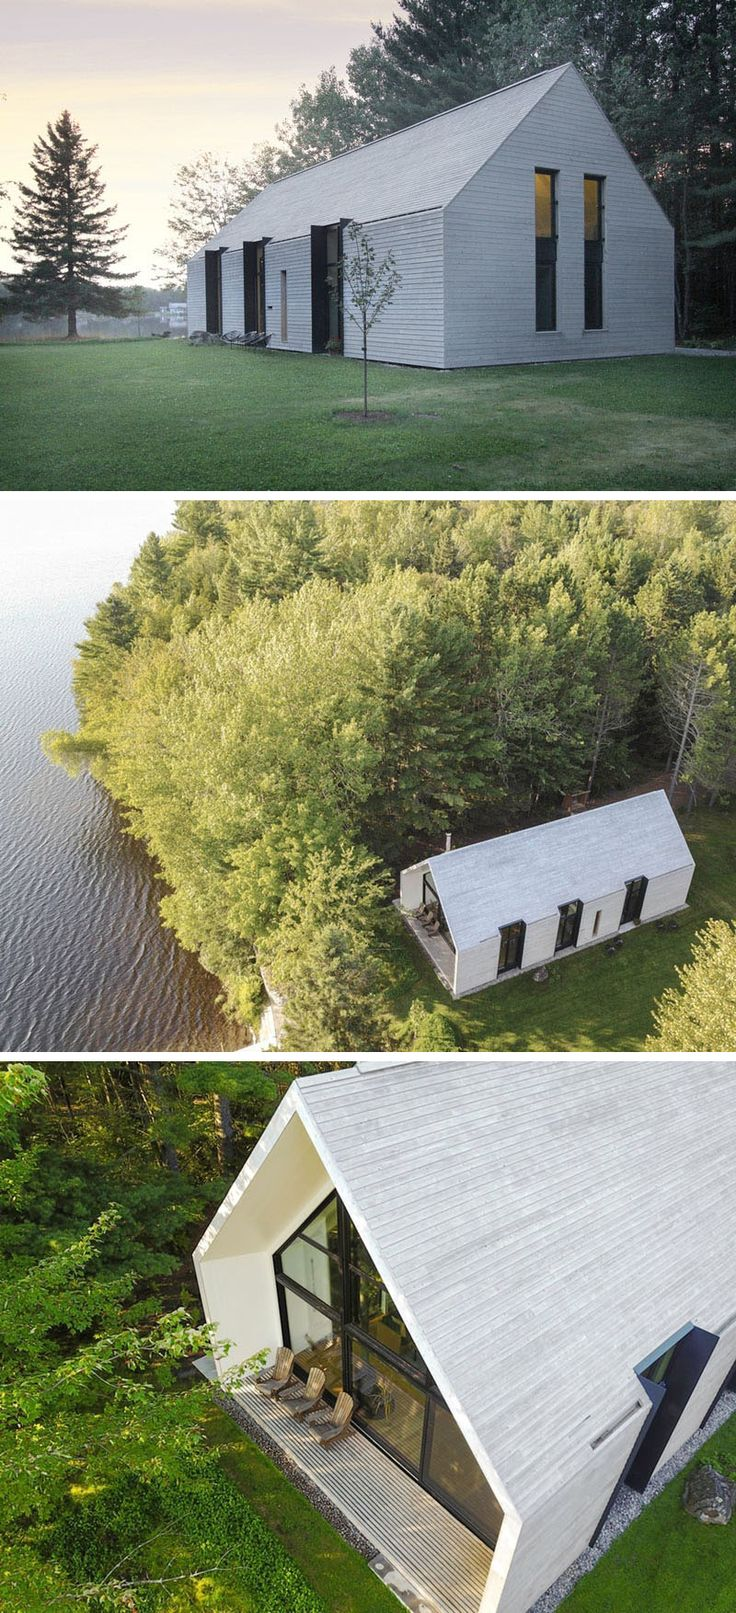 YH2 Have Designed A New Lakeside Vacation House In Quebec